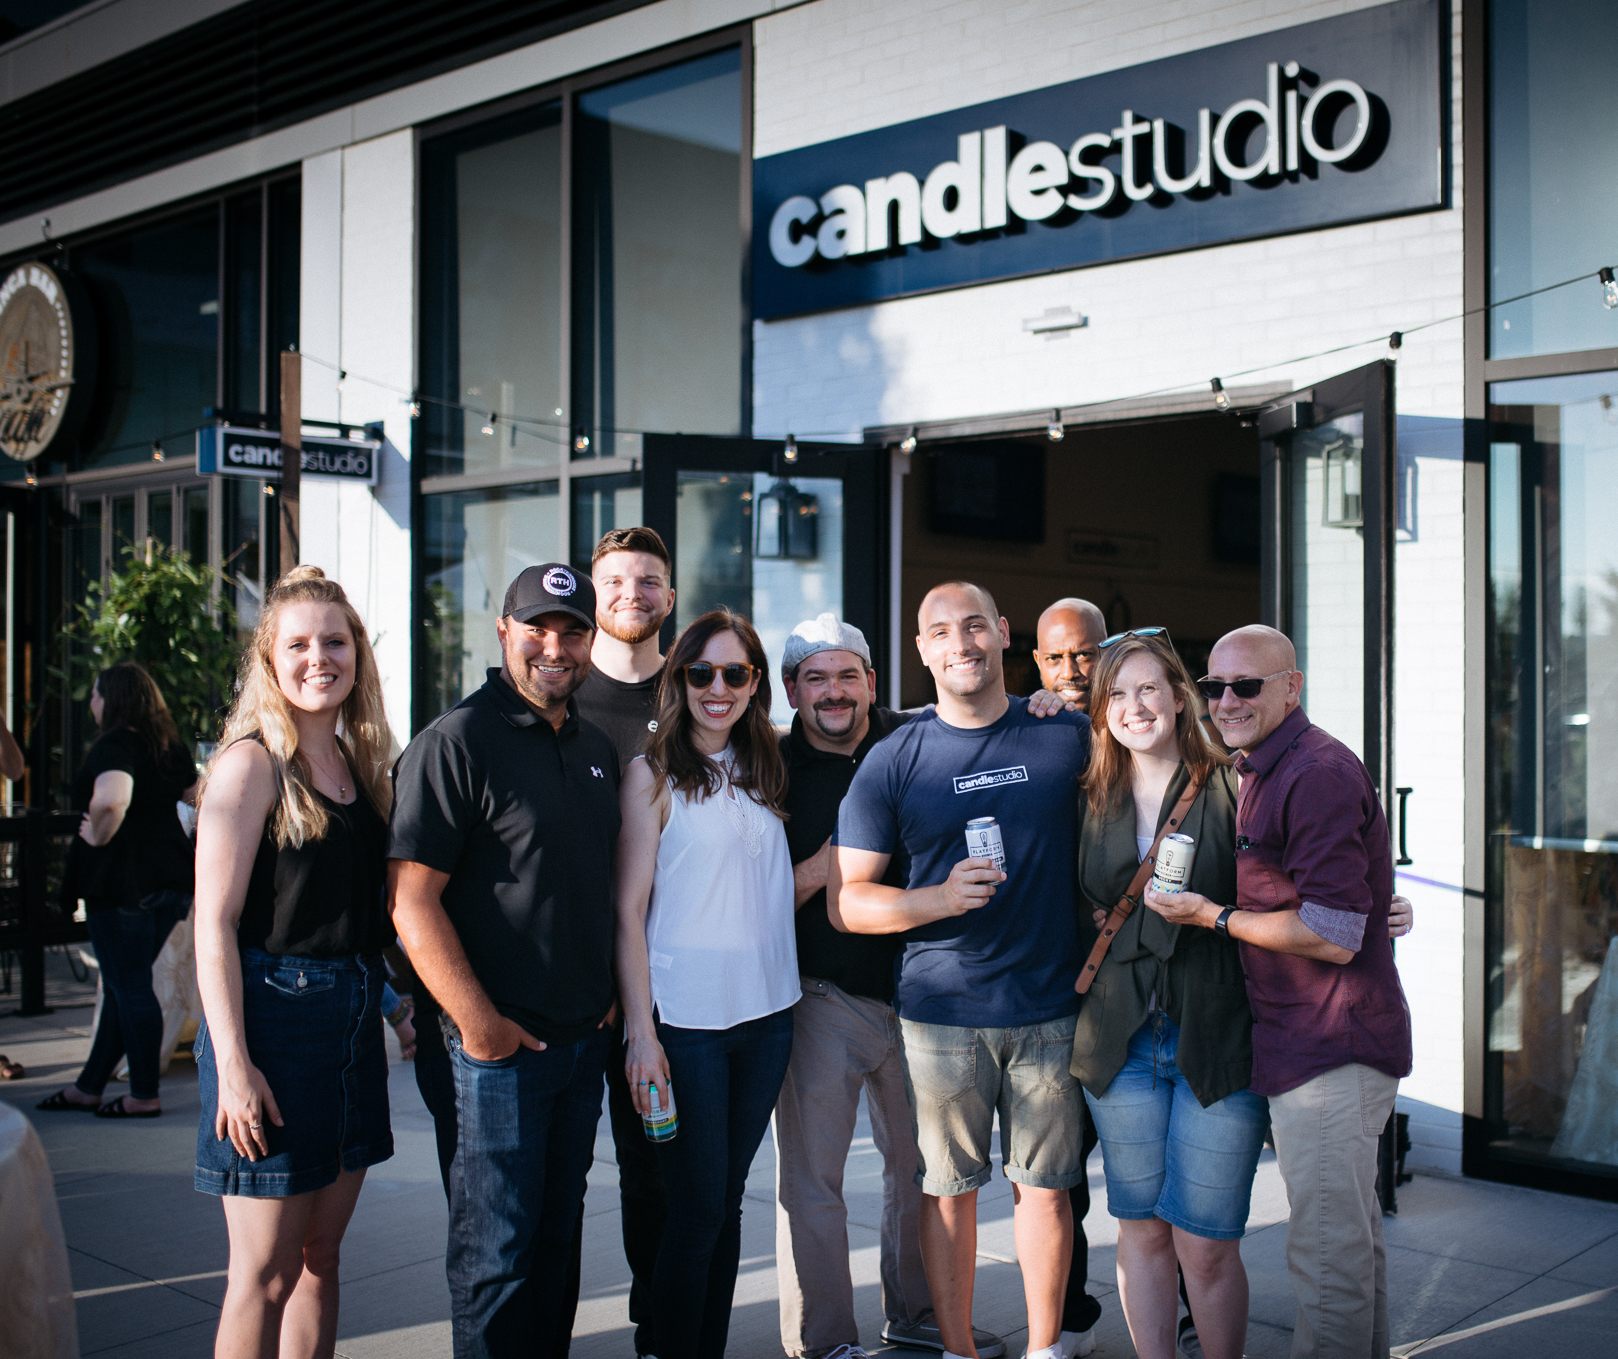 Mwypasek_Thurs_Therapy_The Candle Store_353_20190711_MWP_2180 (1).jpg